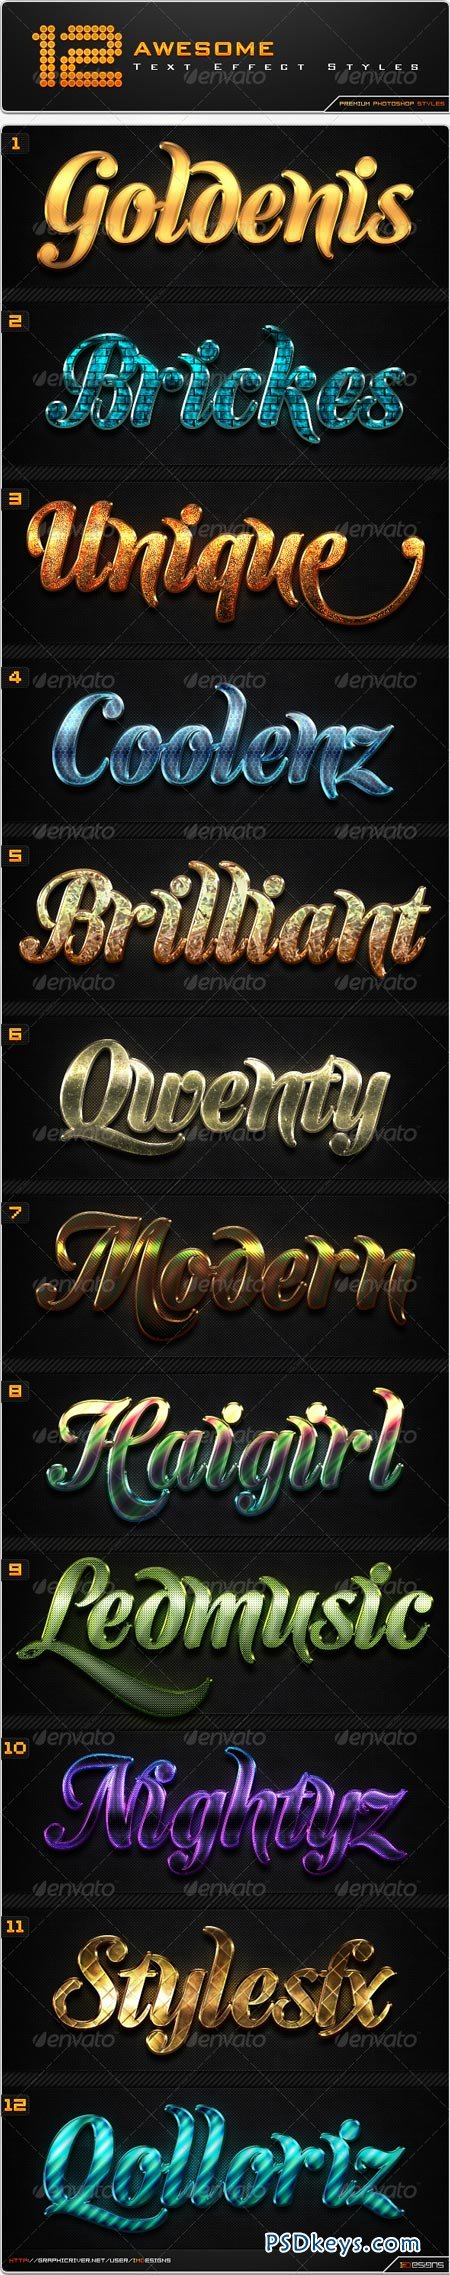 12 Awesome Text Effect Styles 8507767